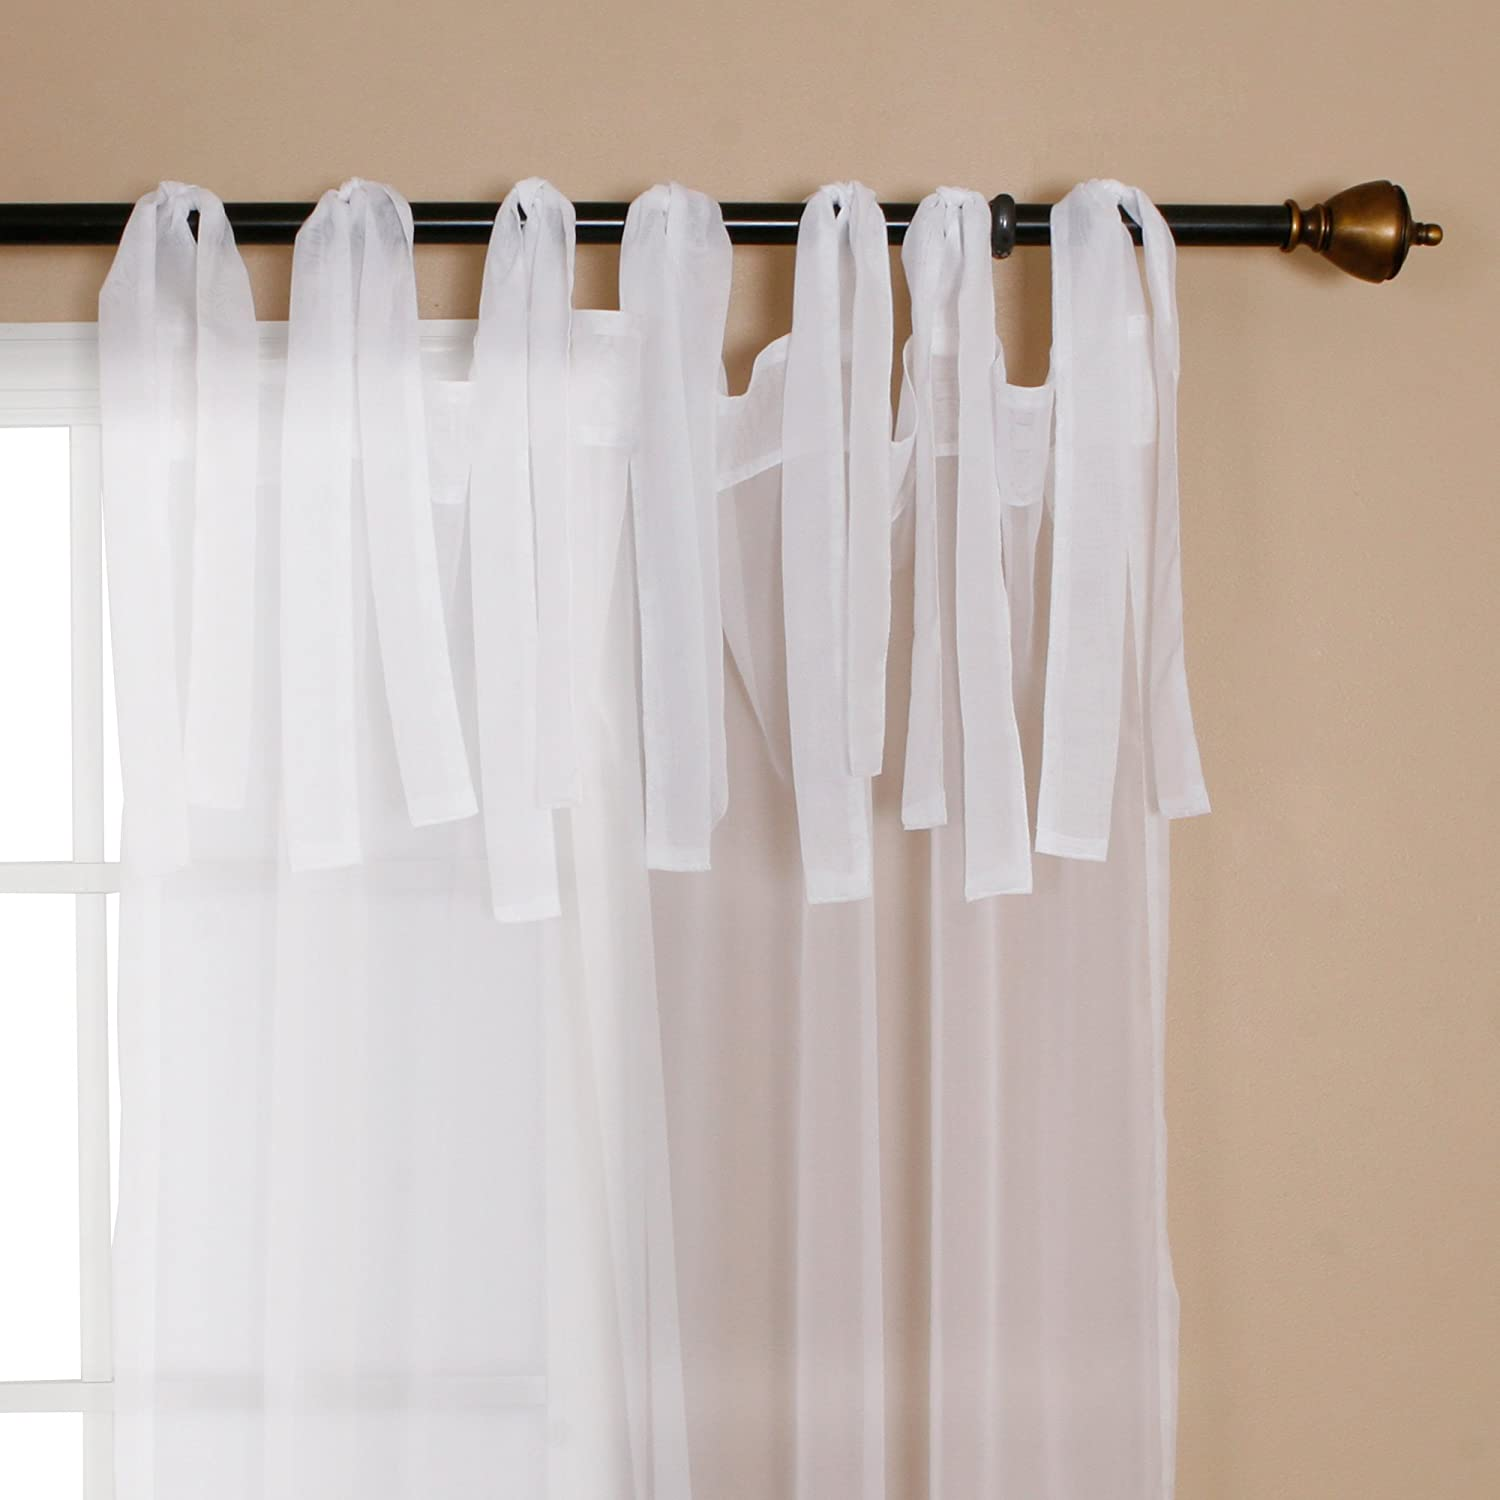 Best home fashion sheer voile tie top curtain pair 84 l sl new free shippin - Pictures of curtains ...